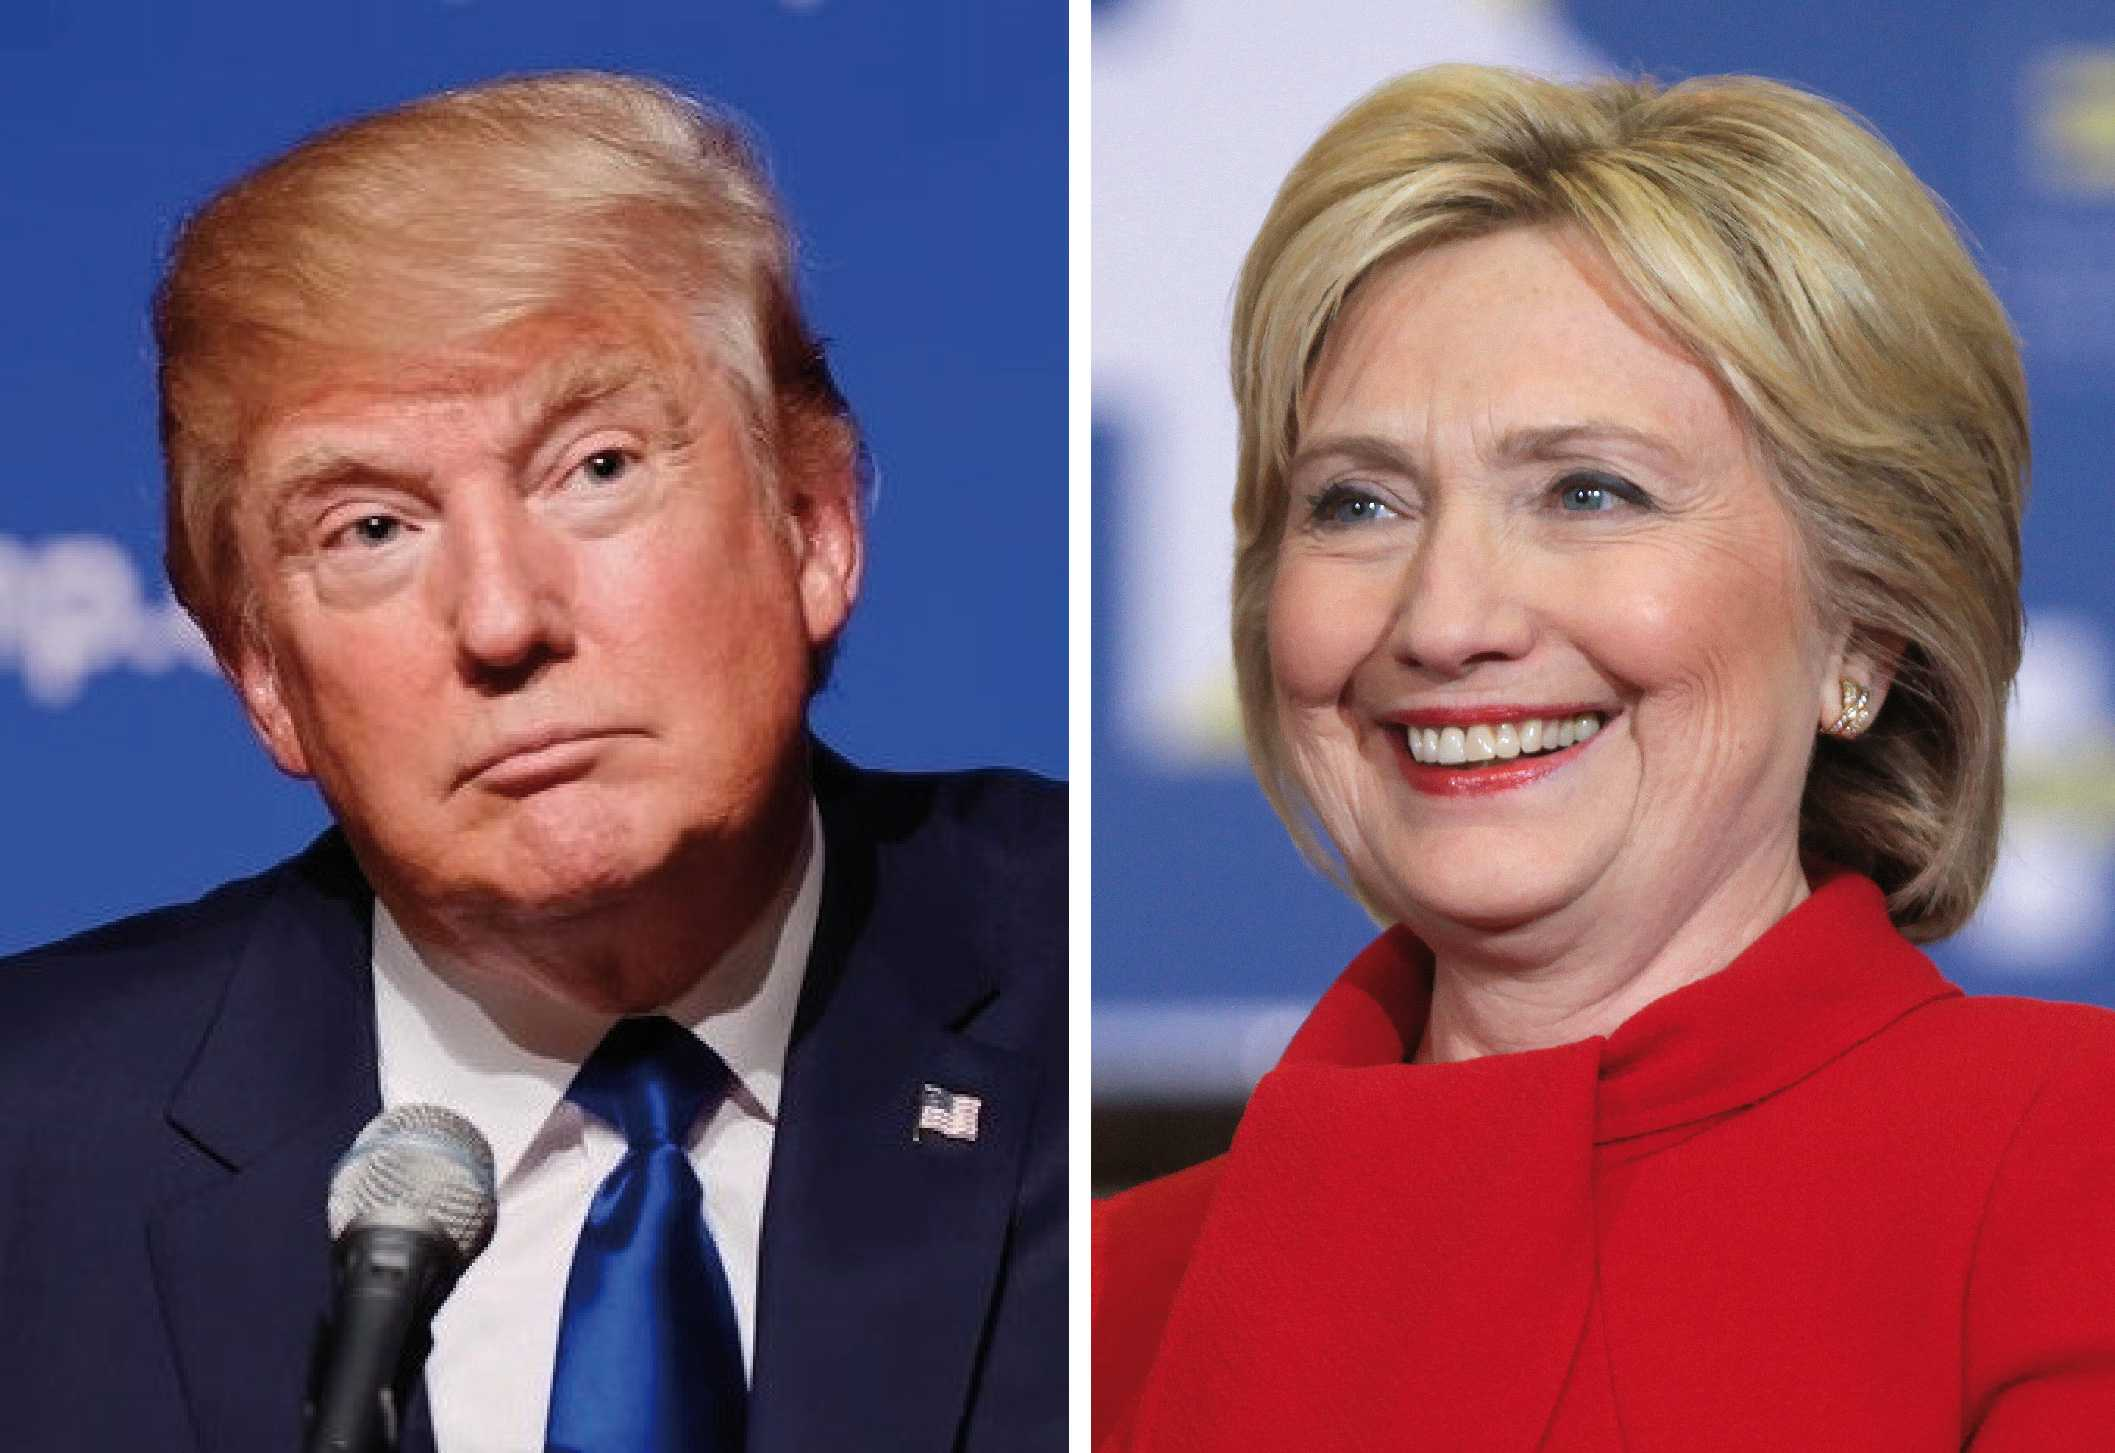 Presidential candidates Donald Trump and Hillary Clinton. (Photo courtesy of Creative Commons).